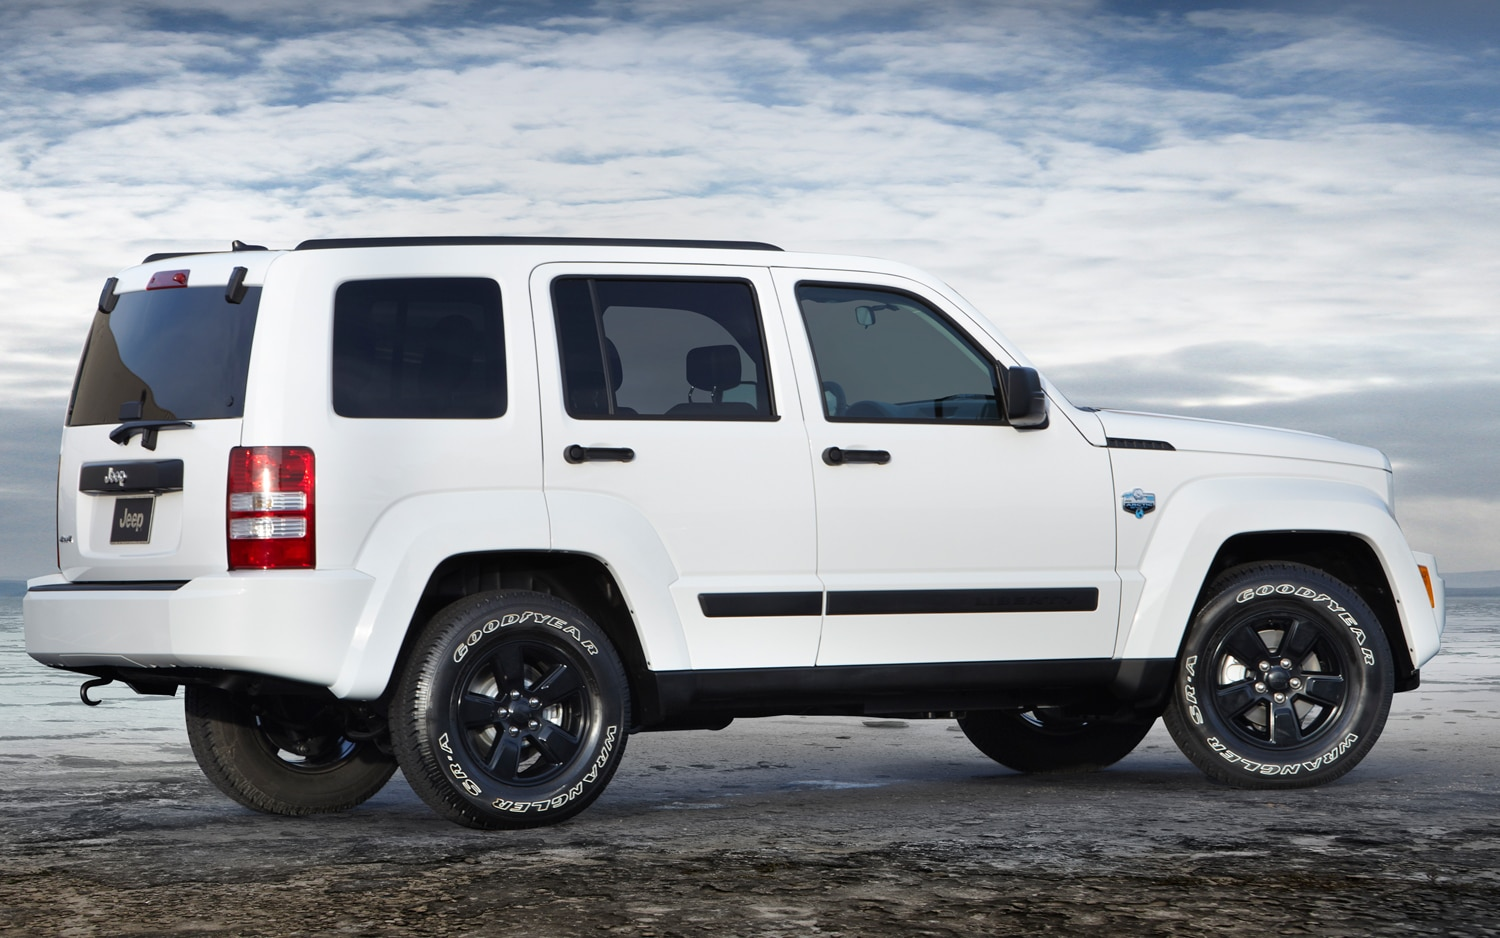 Jeep Liberty Mpg >> Jeep Brings Arctic Edition Package To U.S.-Spec 2012 Wrangler, Liberty Models